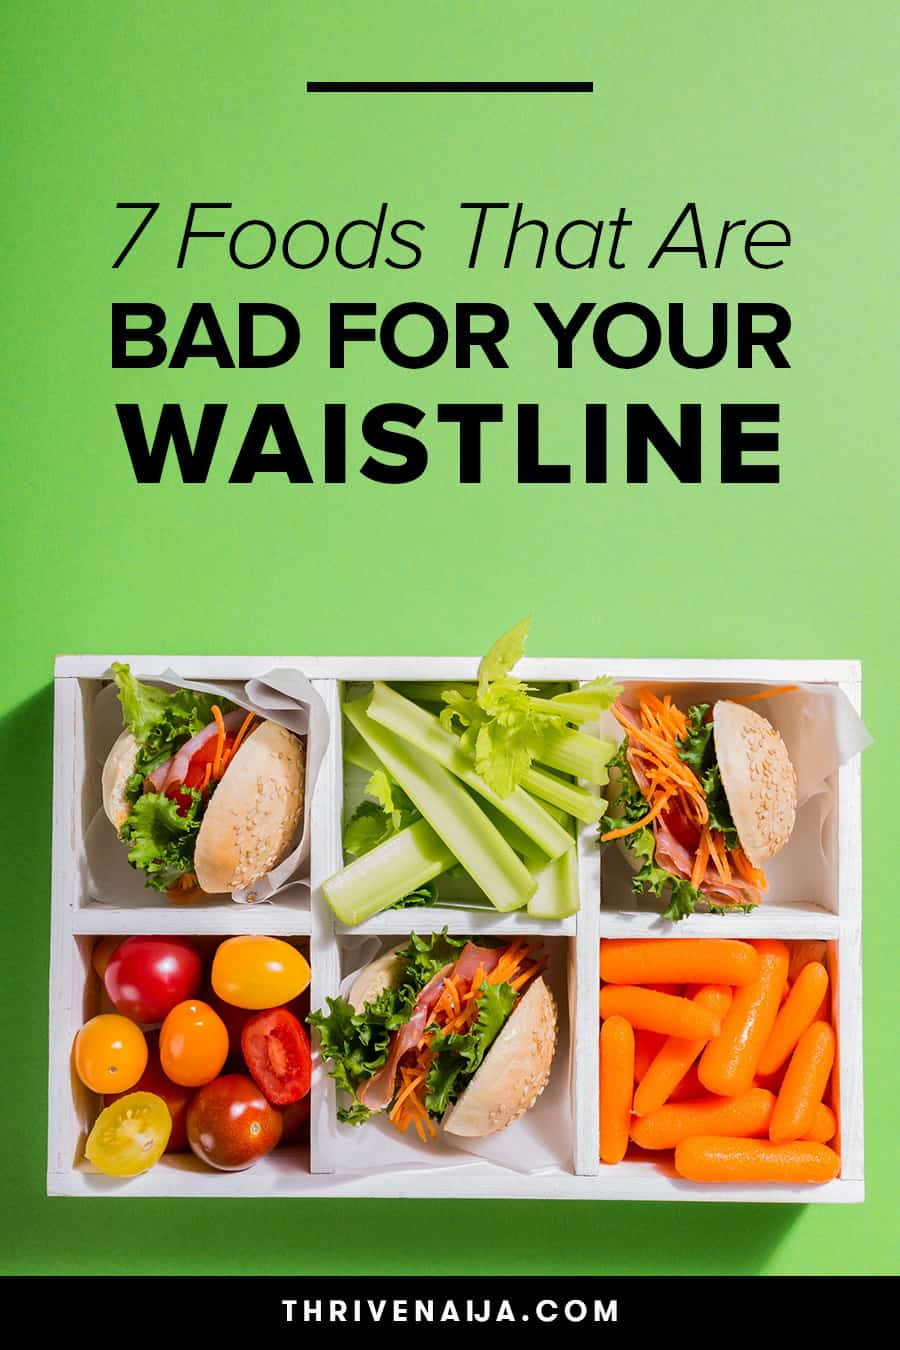 Foods Bad For Your Waistline